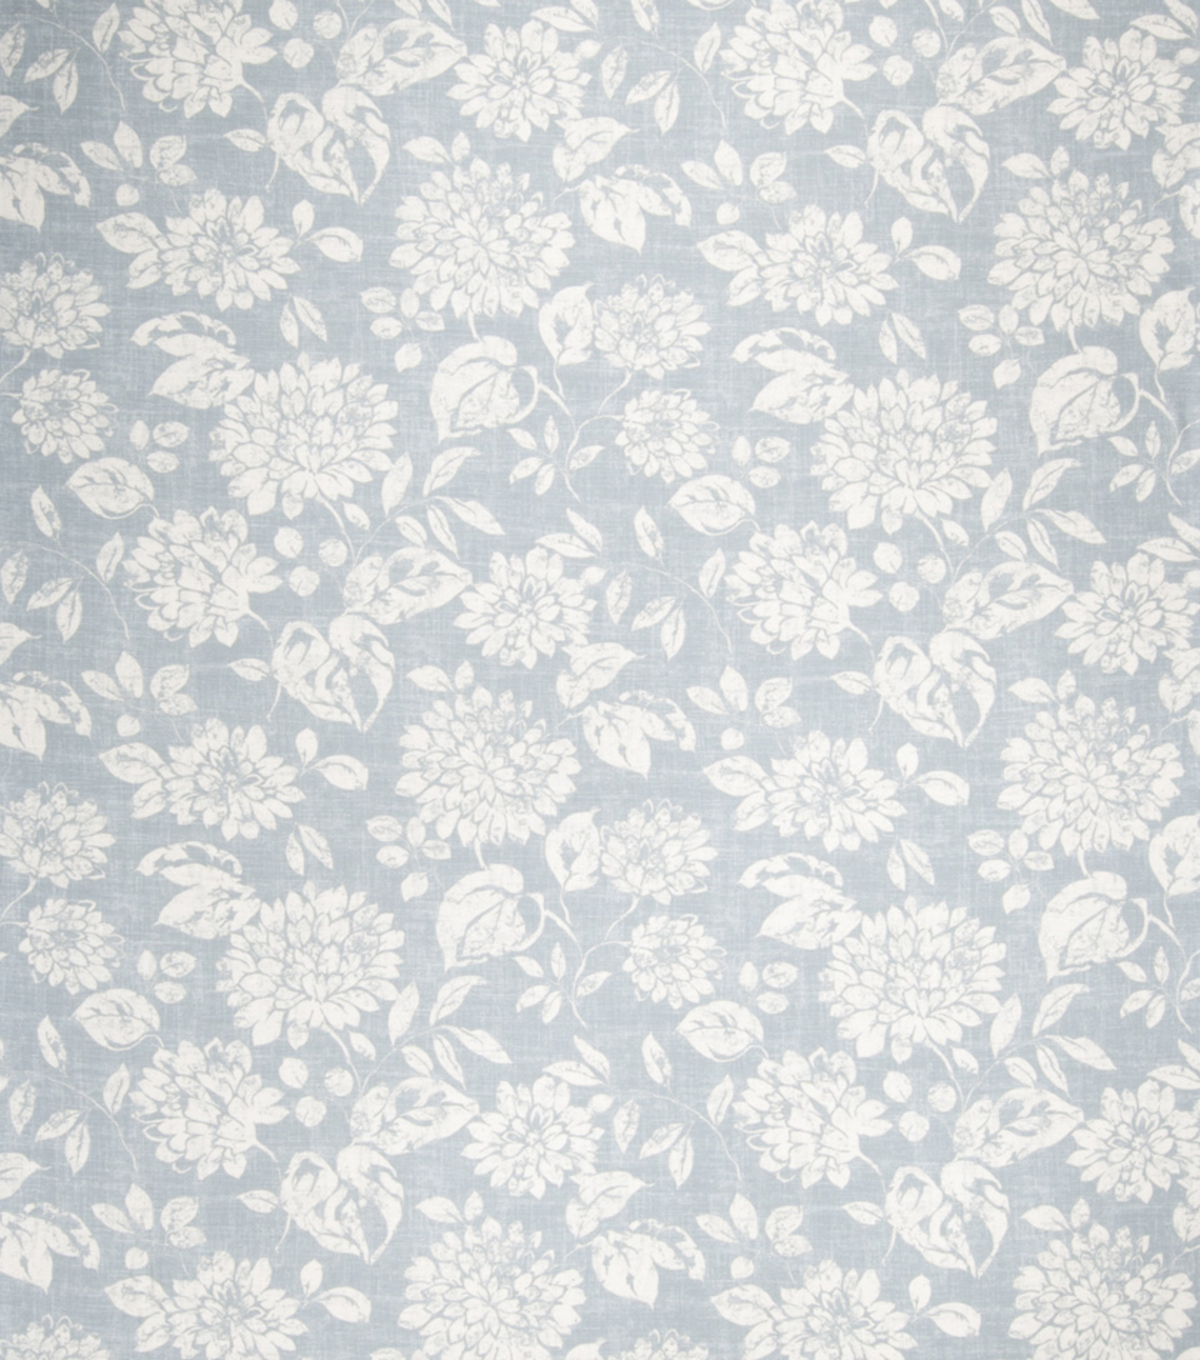 Home Decor 8\u0022x8\u0022 Fabric Swatch-Upholstery Fabric Eaton Square Littleton Surf